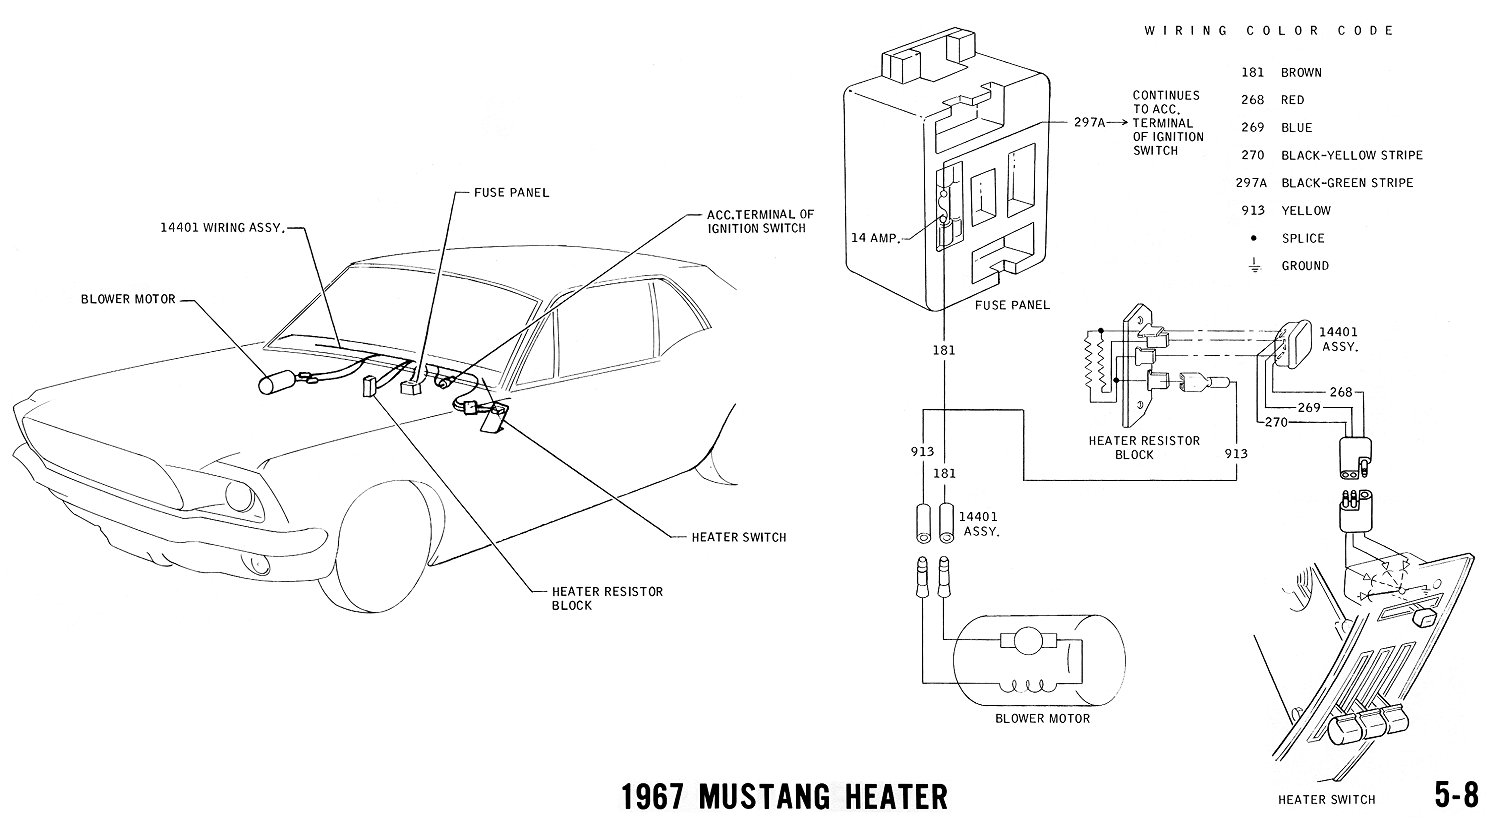 Ford Mustang Wiring Diagram Also 1967 Mustang Fuse Box Wiring Diagram